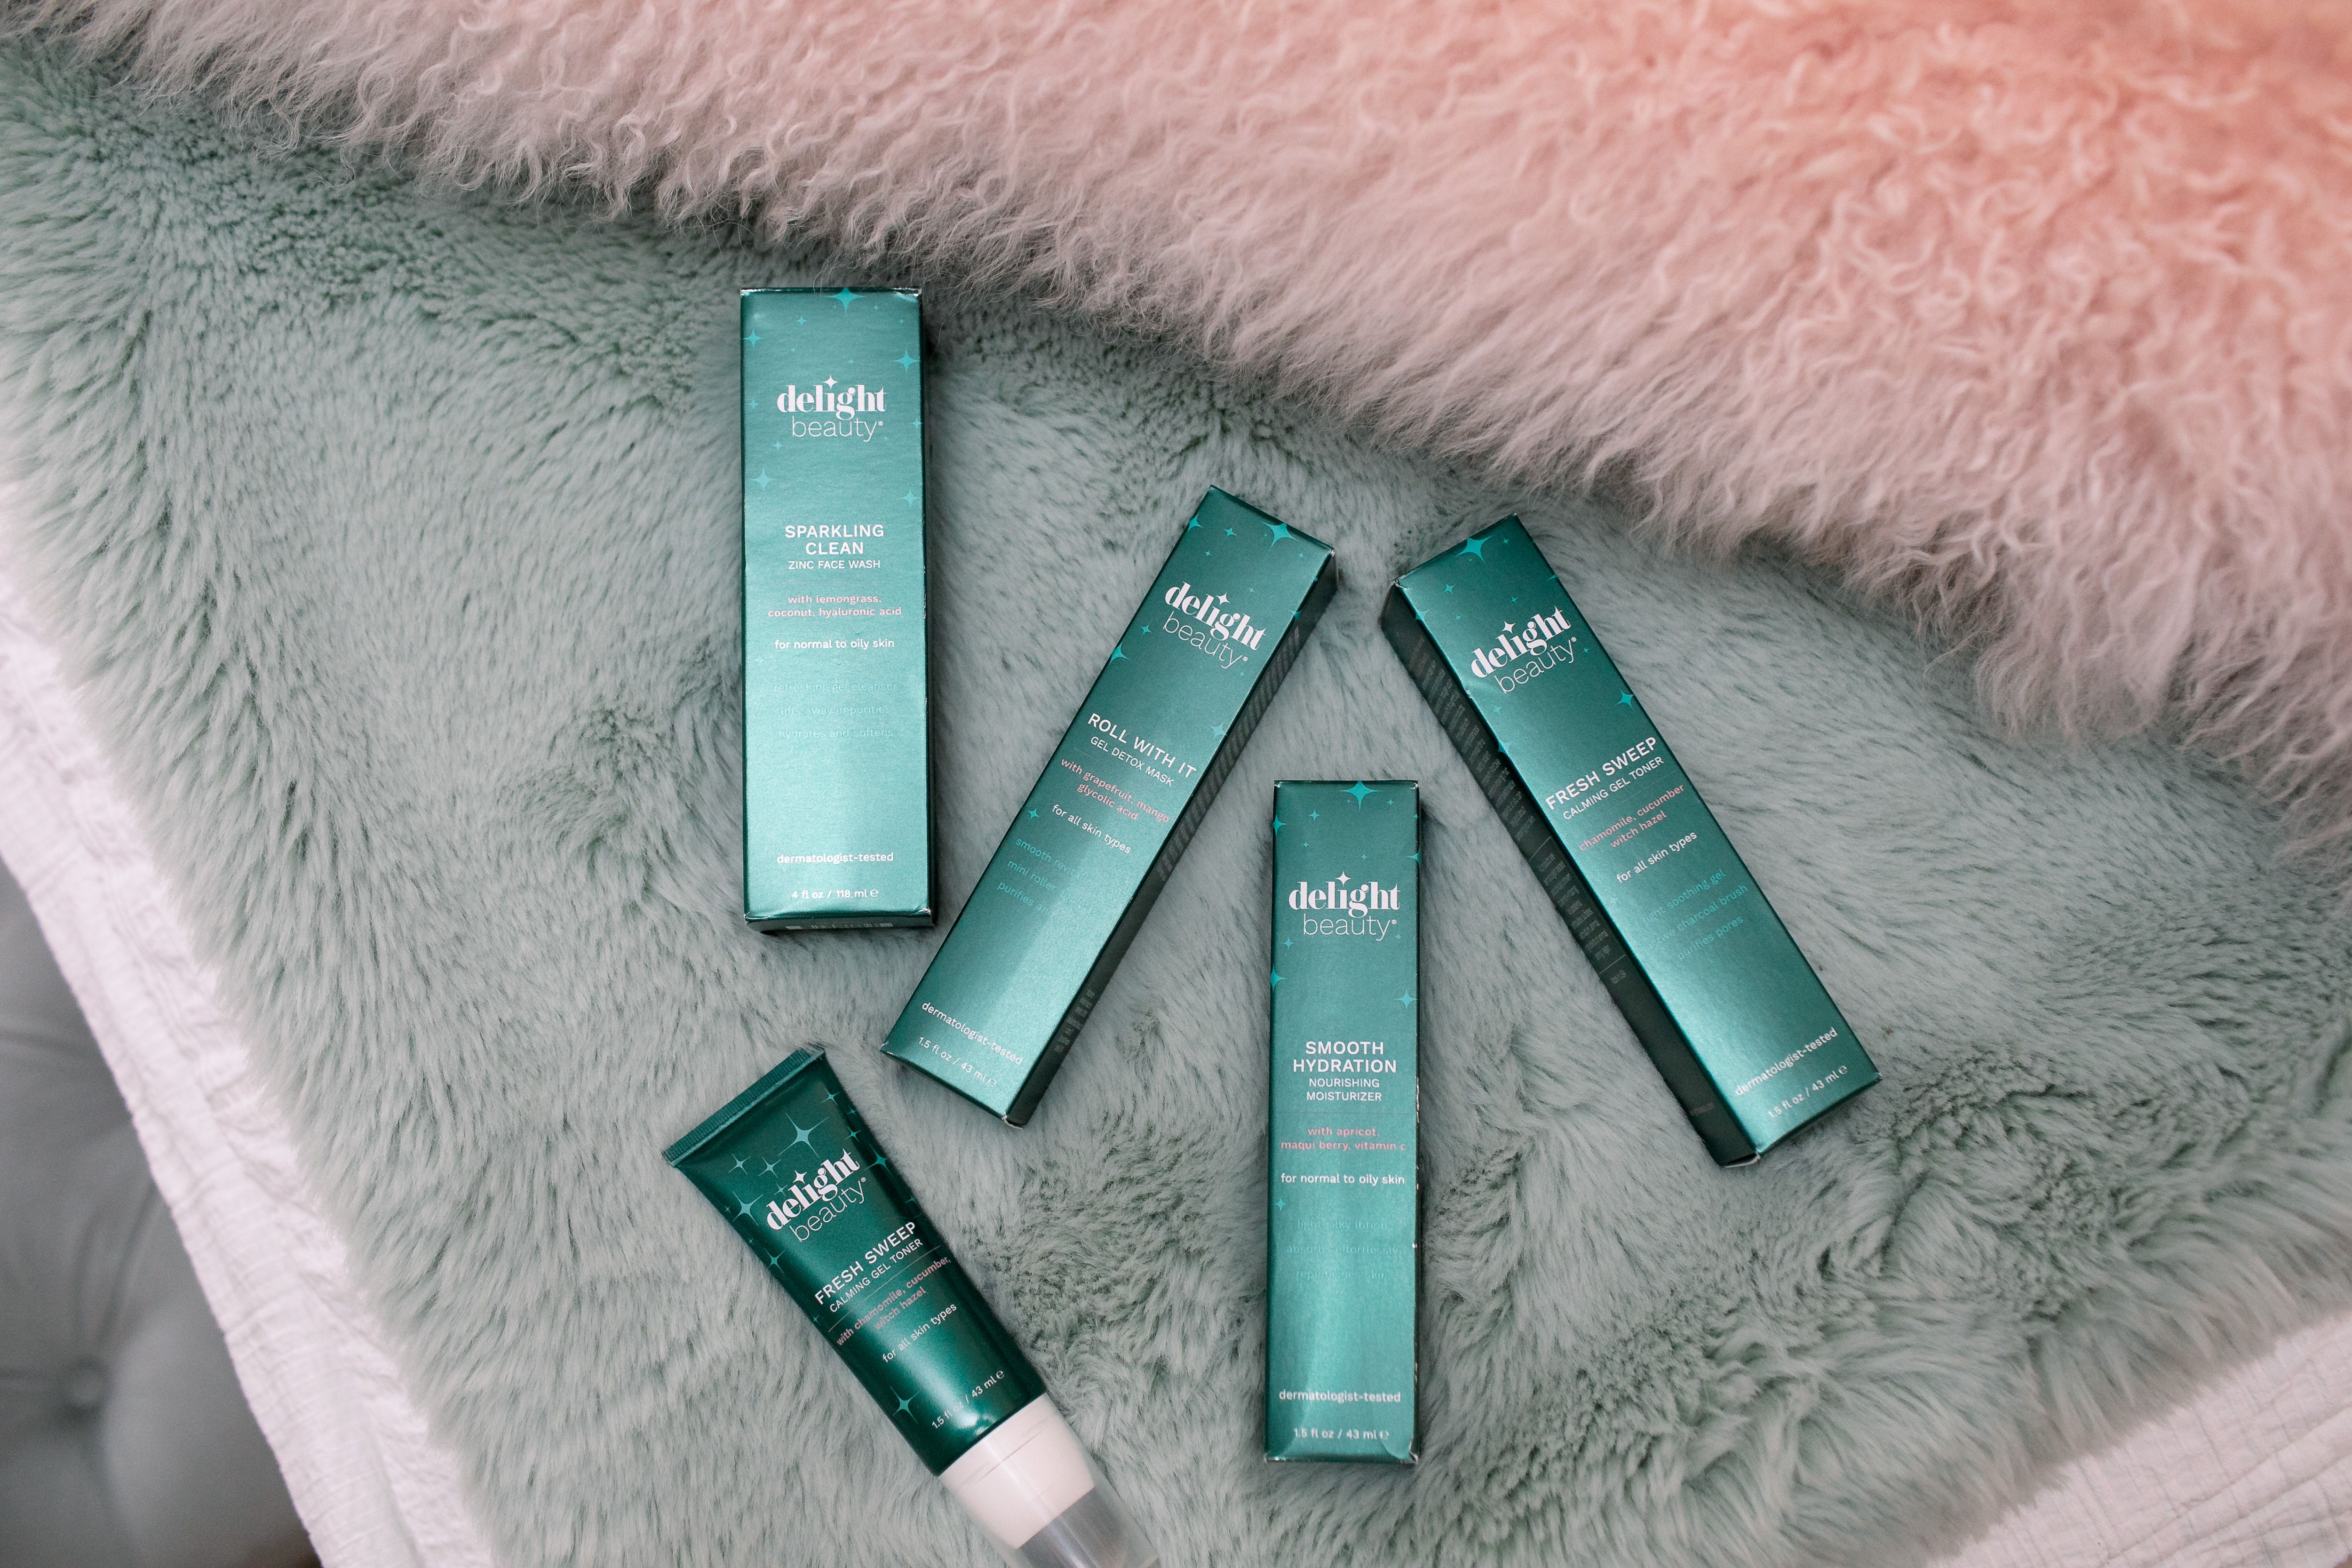 Delight Beauty Skin Care Products reviewed by top US life and style blog, Walking in Memphis in High Heels.